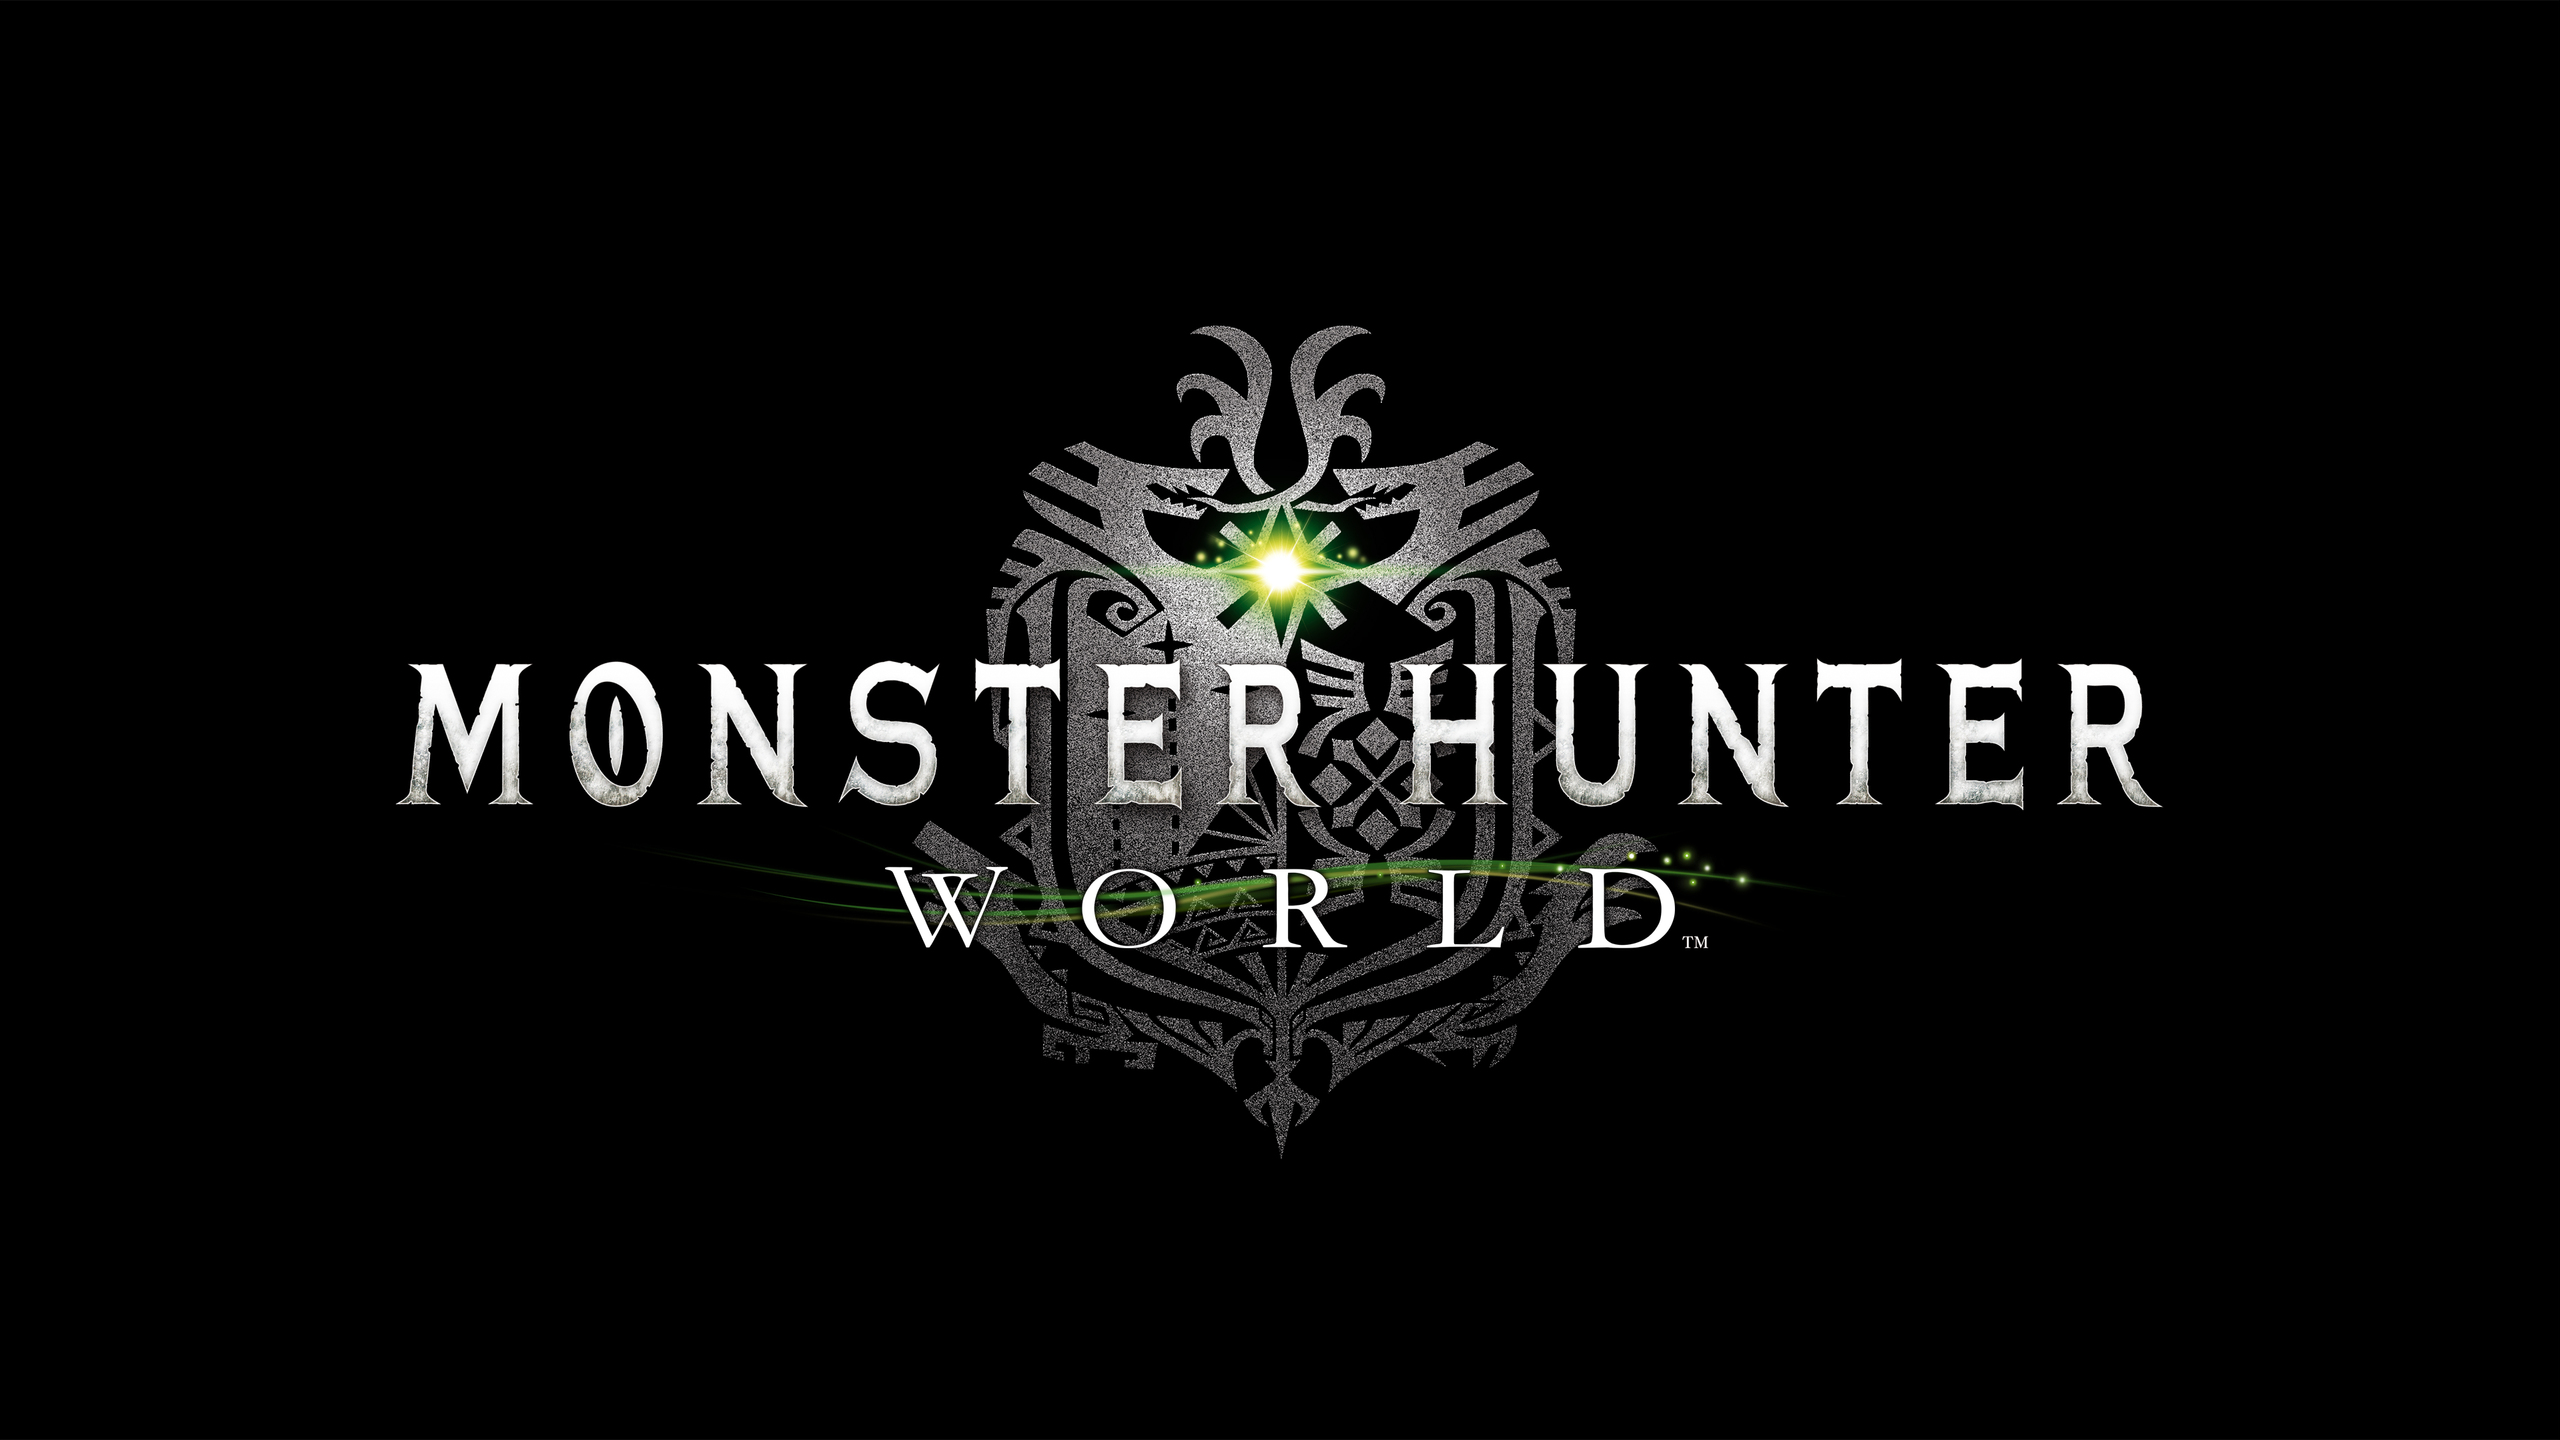 Monster Hunter World Logo >> 2560x1440 Monster Hunter World 1440P Resolution HD 4k Wallpapers, Images, Backgrounds, Photos ...